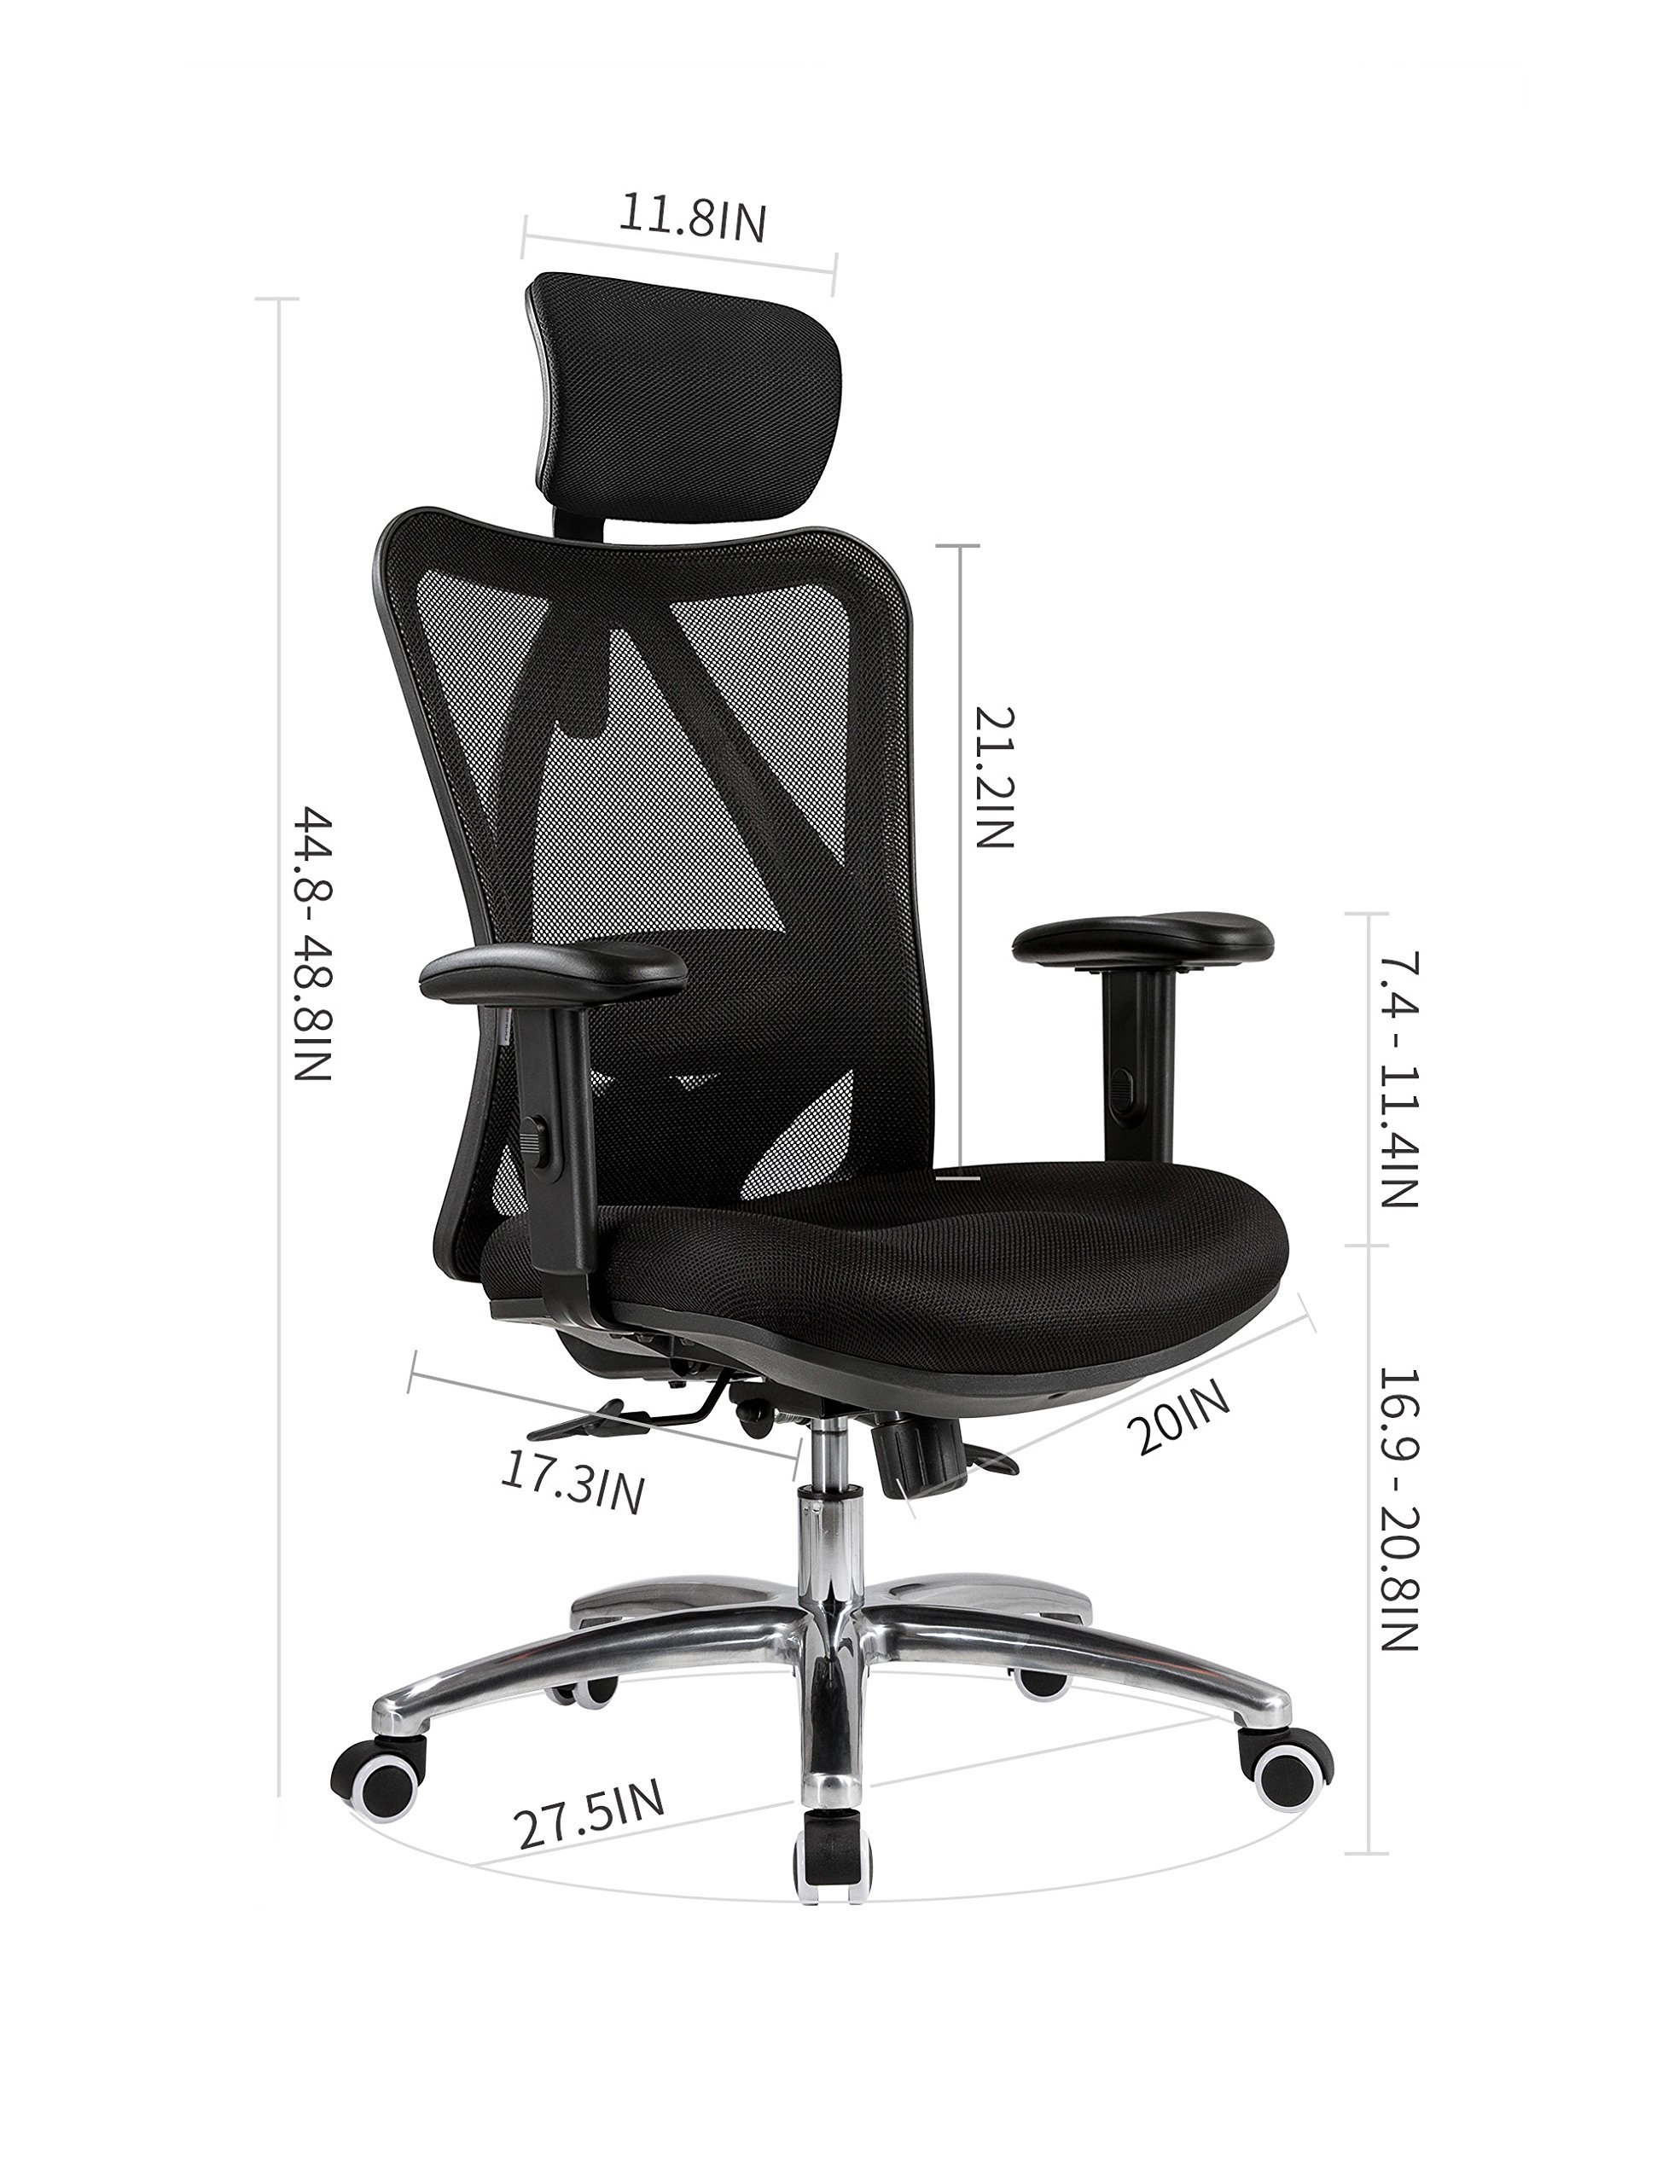 Sihoo Ergonomics Office Chair Computer Chair Desk Chair, Adjustable Headrests Chair Backrest and Armrest's Mesh Chair (Black) by SIHOO (Image #6)